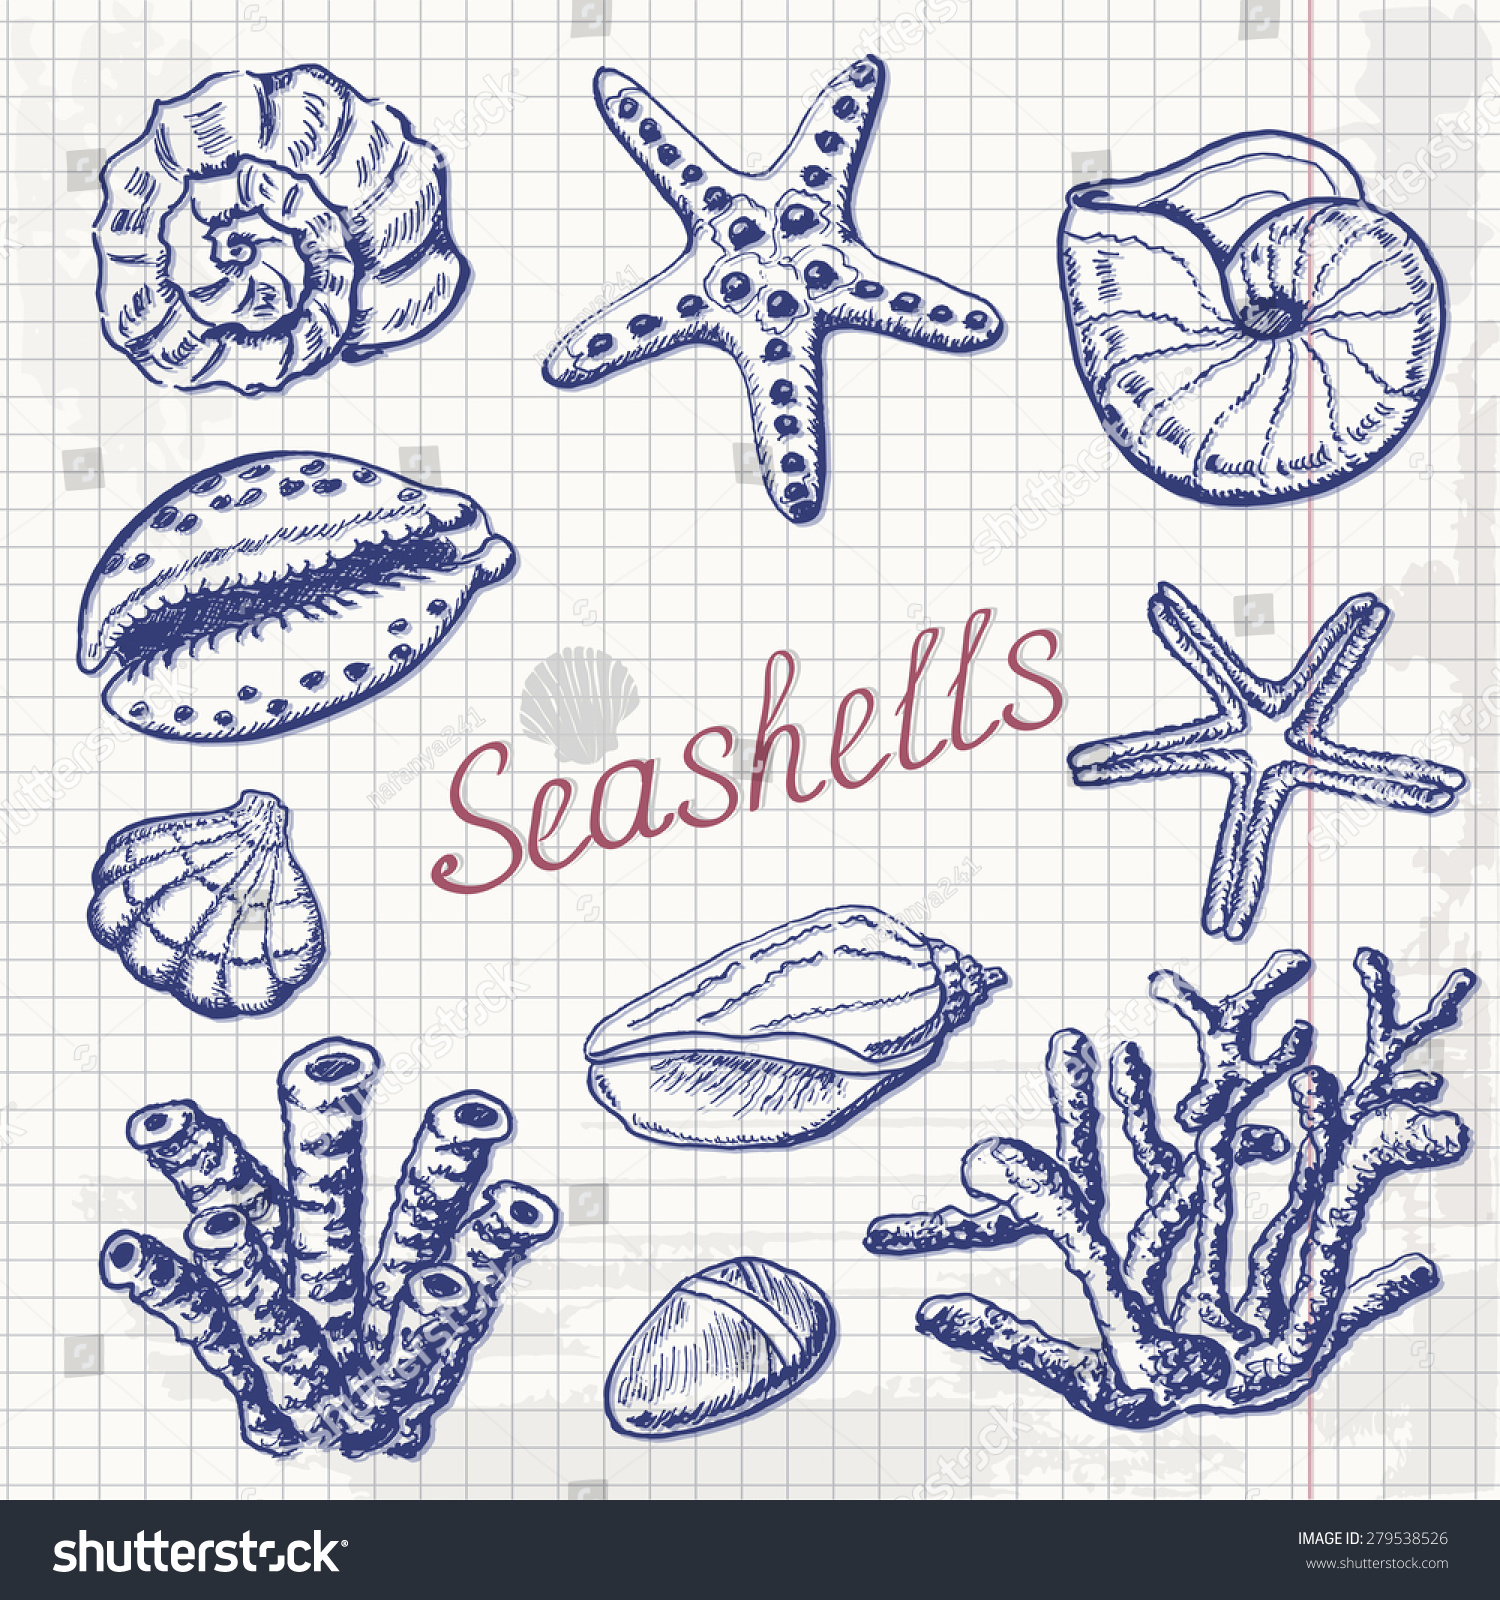 Recreational Sea Shell Collecting